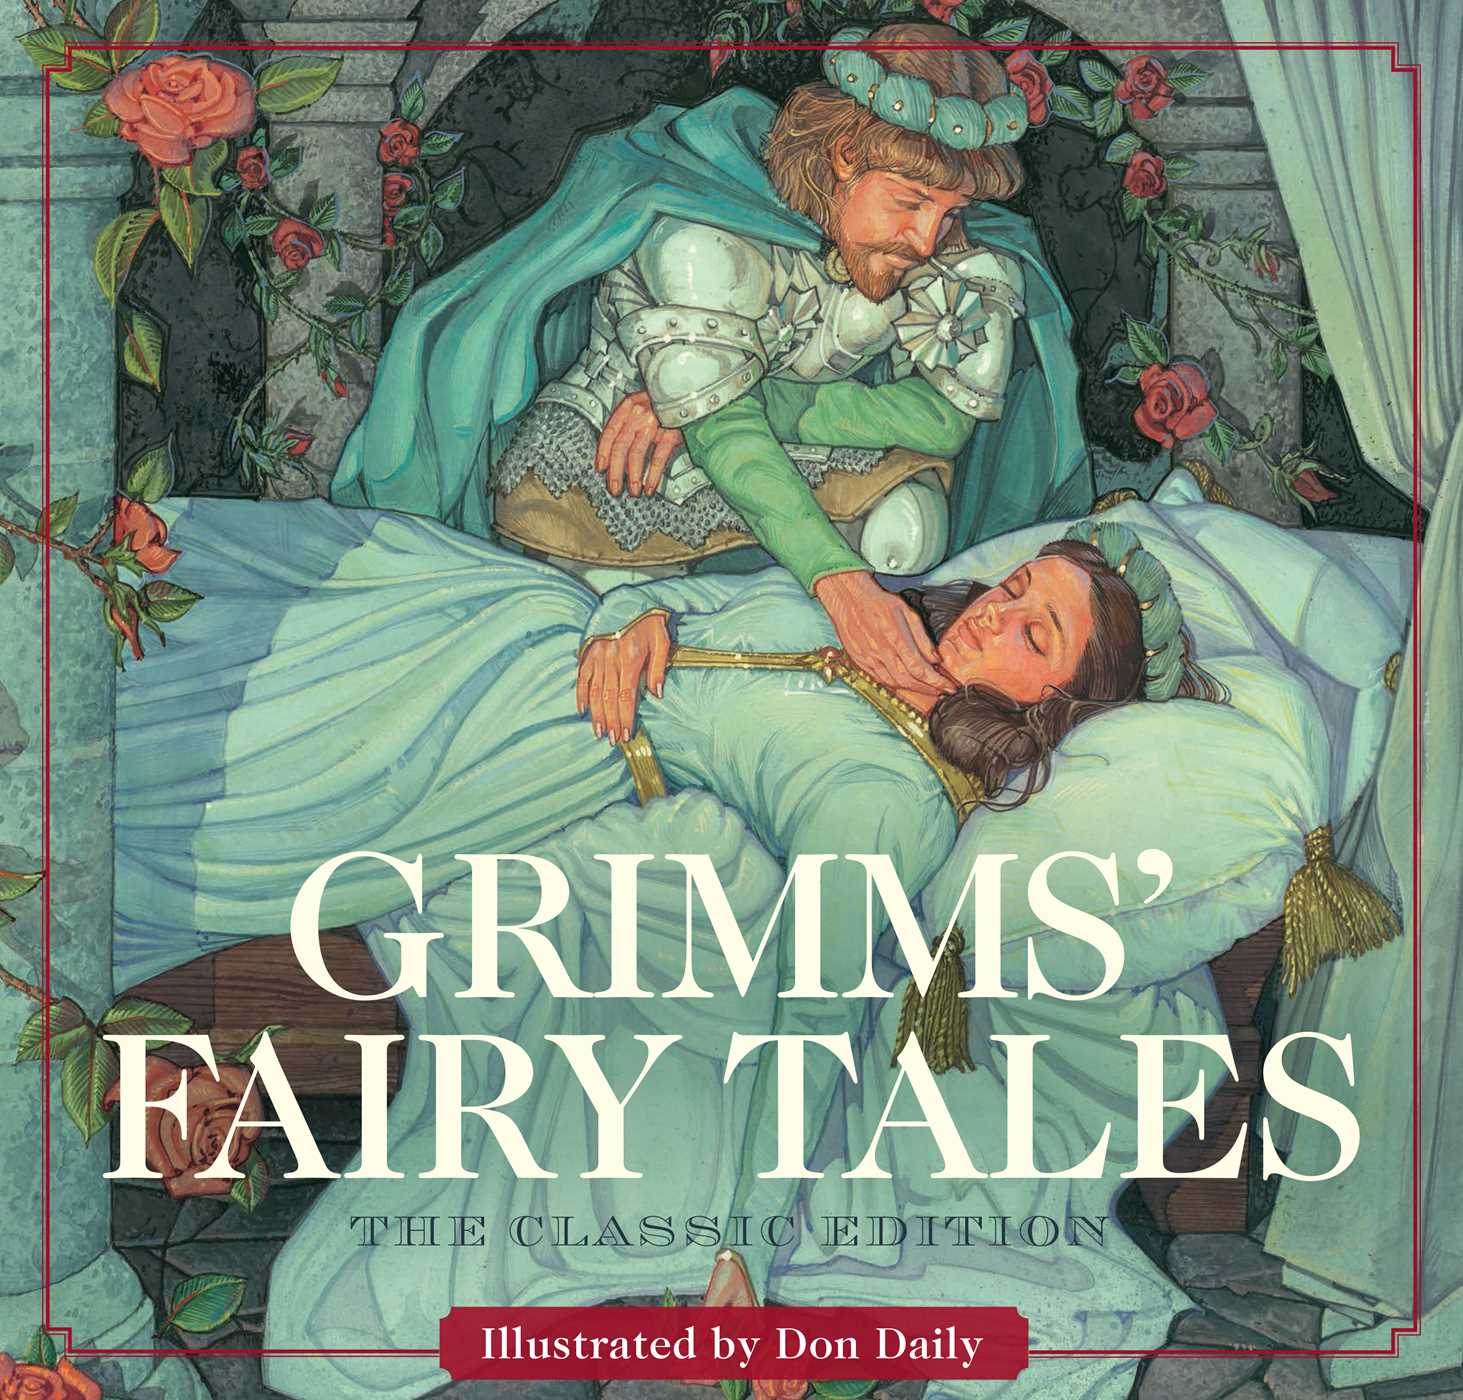 Grimms fairy tales 9781604334982 hr